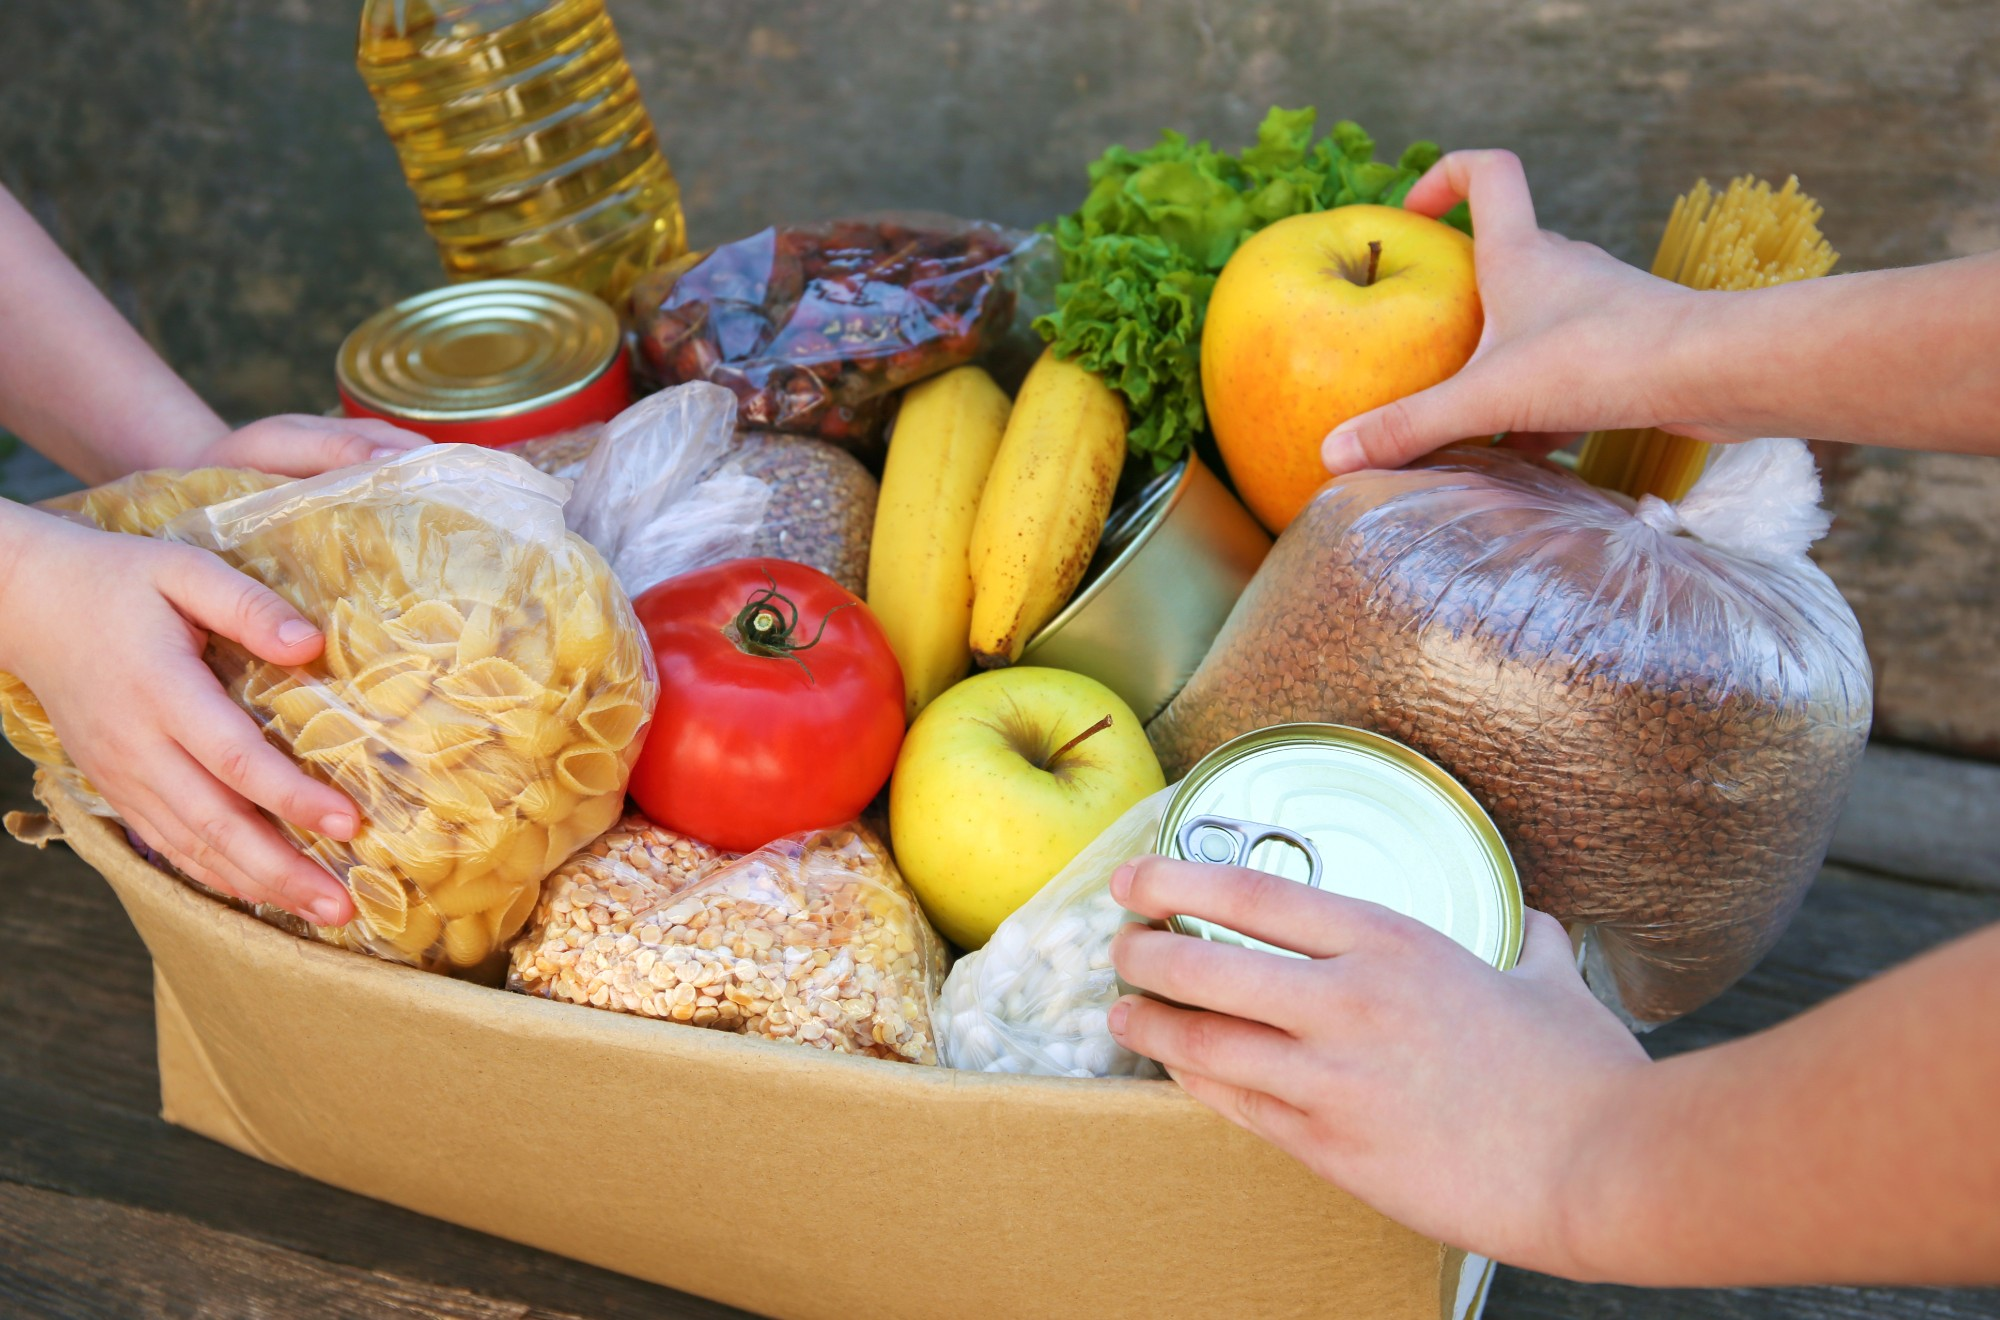 Everyone Deserves Access to Healthy Food. So Why Is So Much of It Going to Waste?